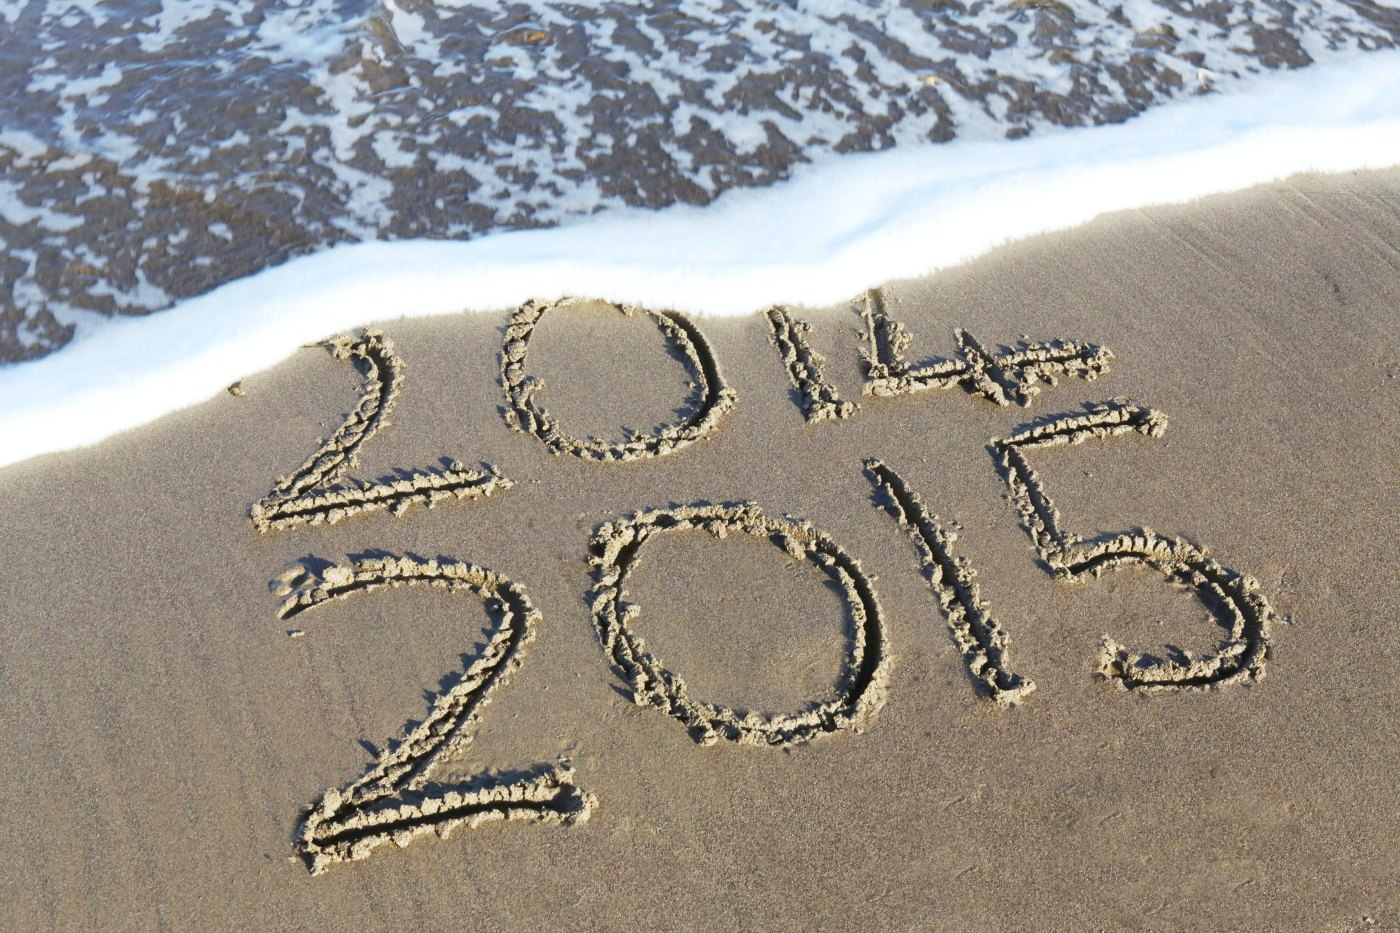 ocean wave washing away part of the years 2014 and 2015 that are written in sand representing a positive office culture for the new year ahead